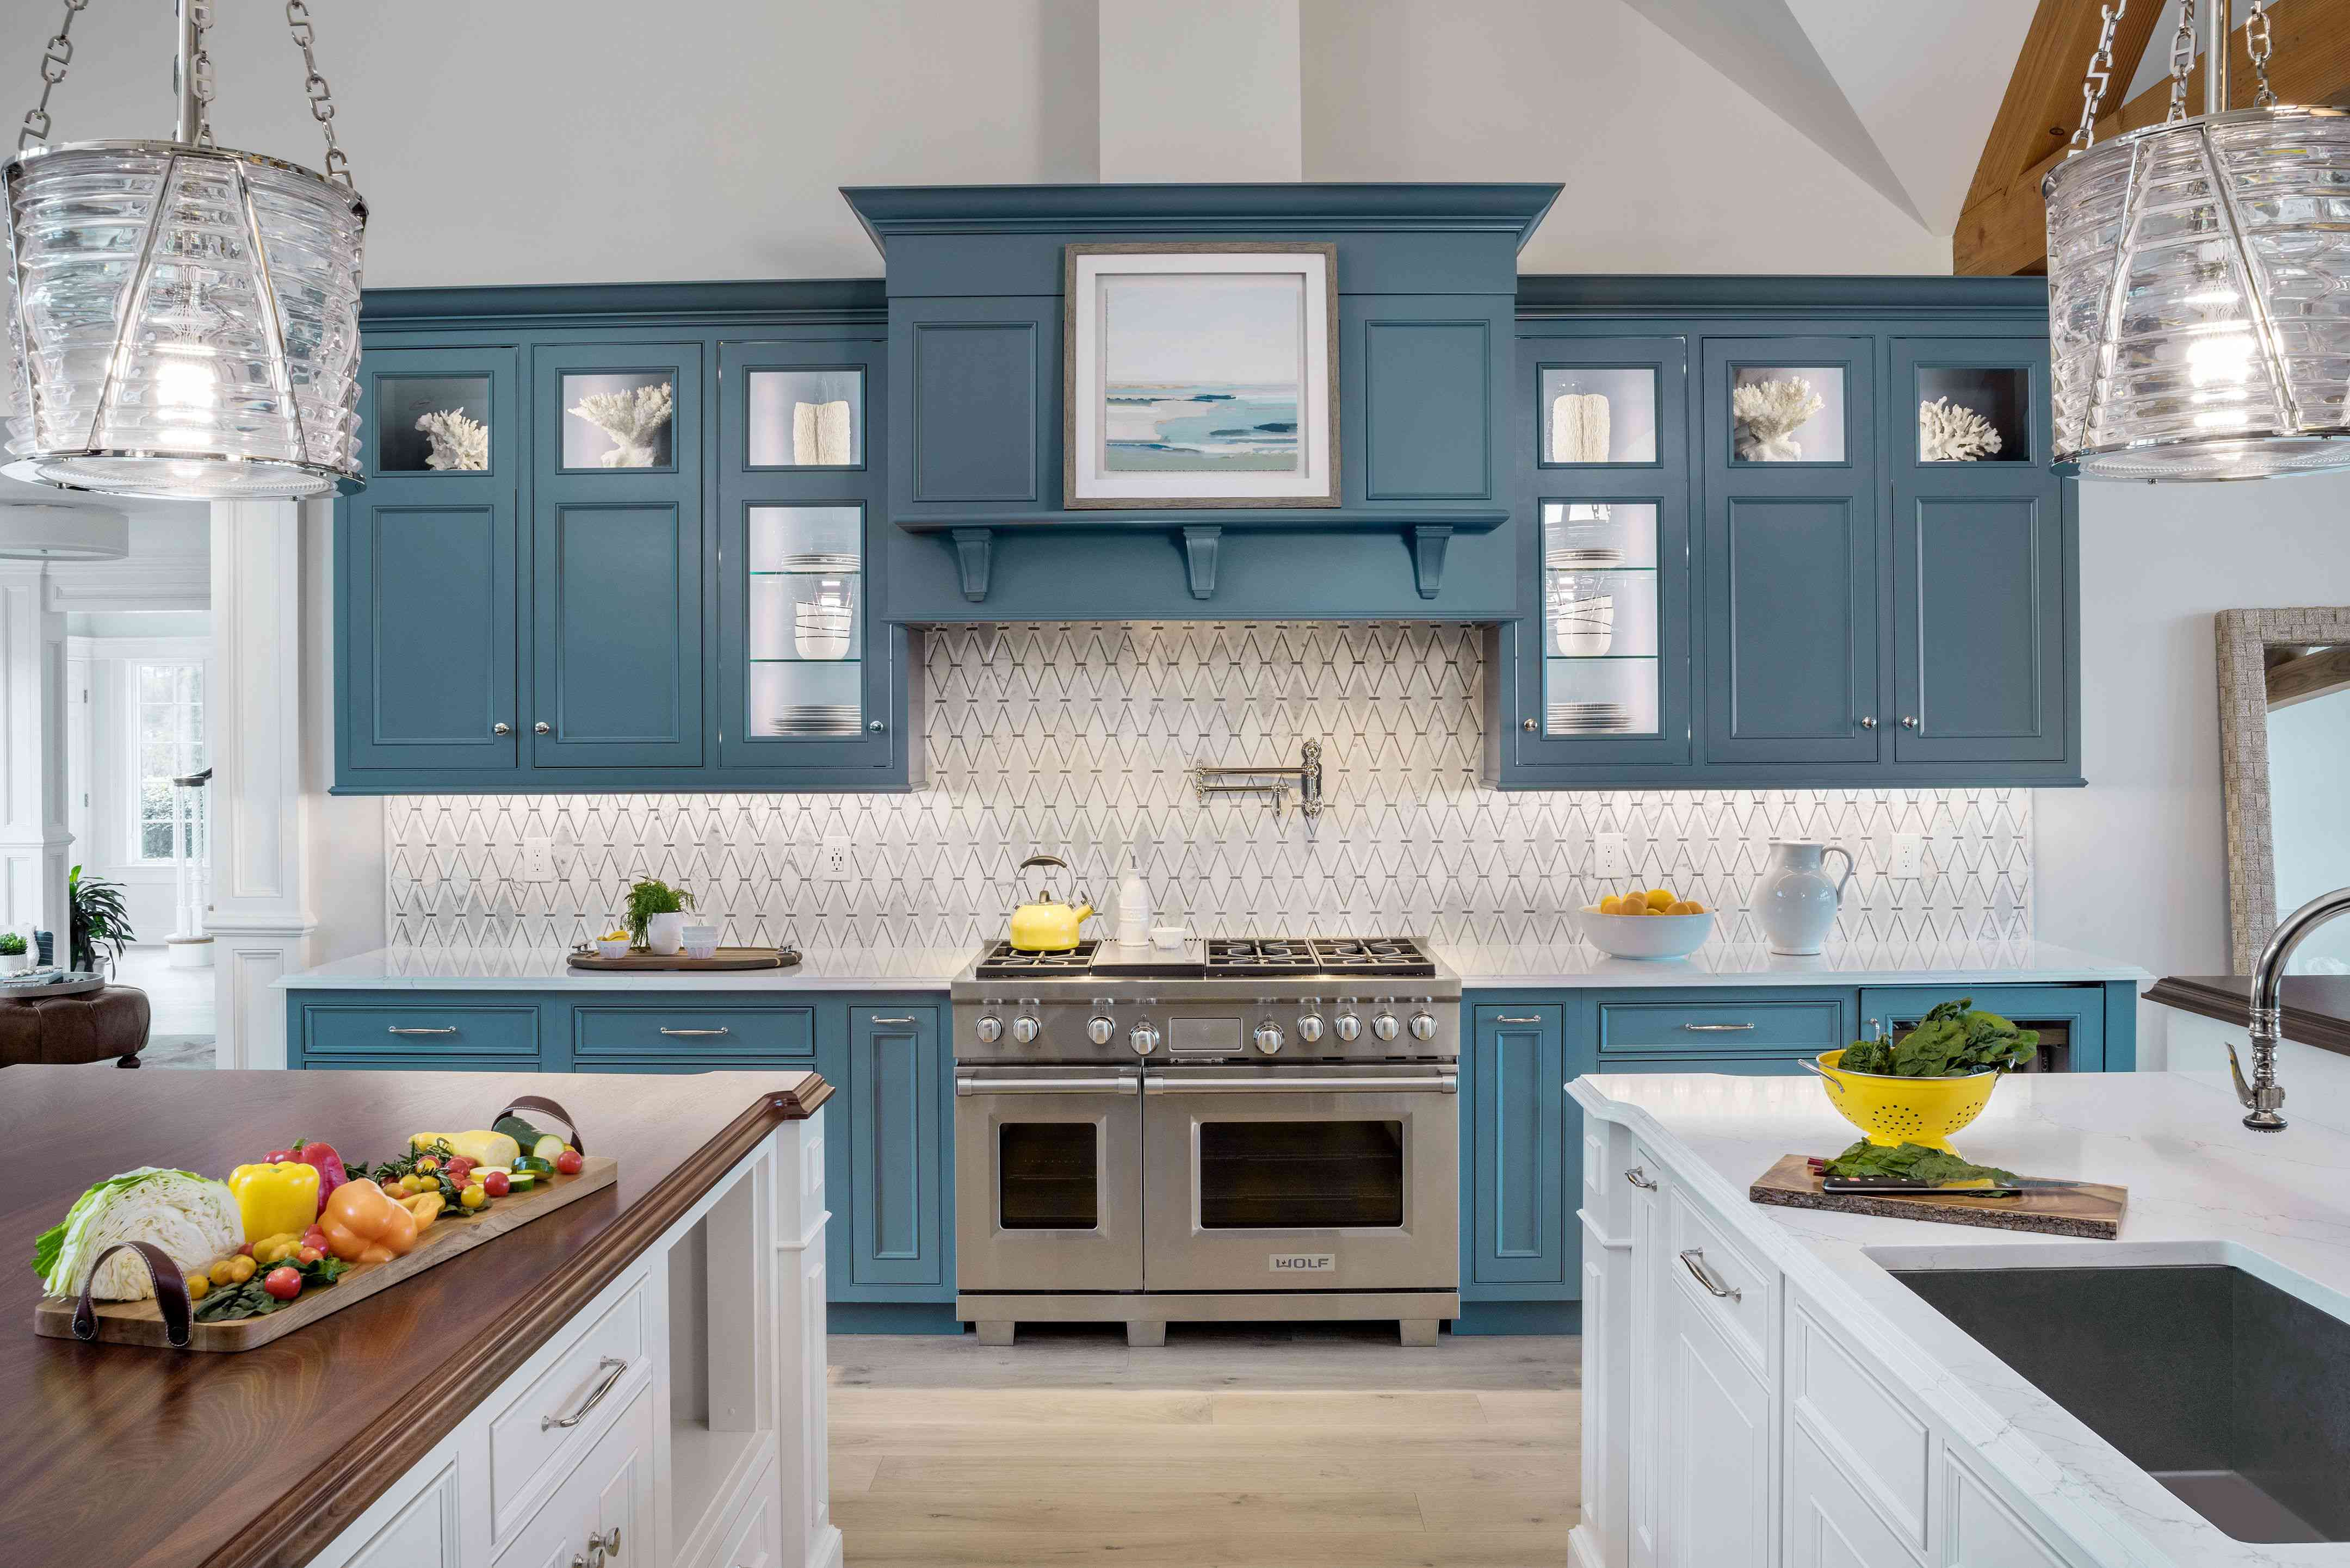 ocean meadow kitchen, muted blue cabinets, white patterned backsplash, white countertops